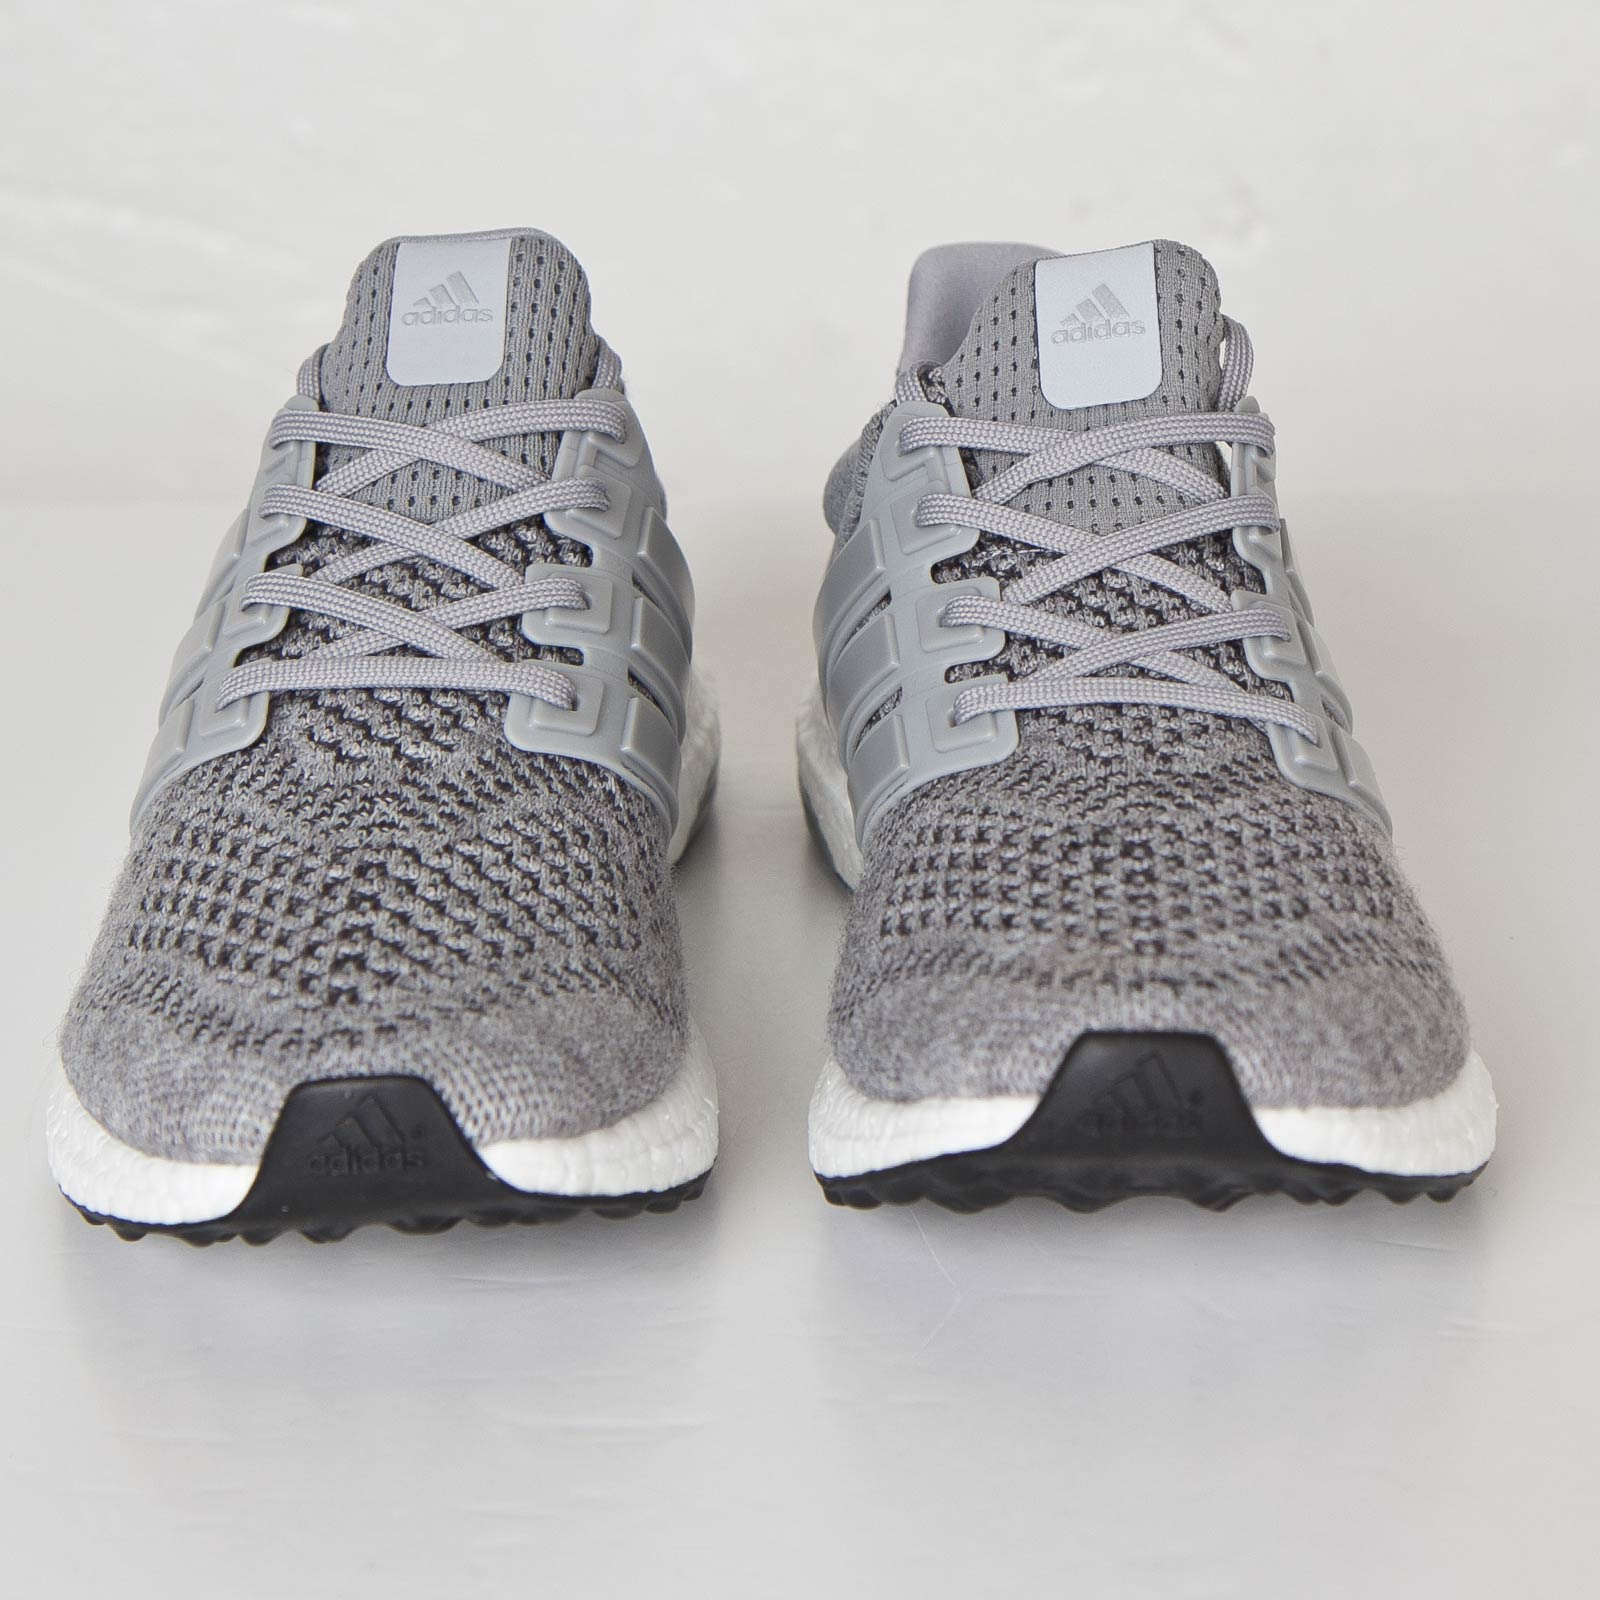 a42c57f36e615 adidas ultra boost m - S77510 - Sneakersnstuff